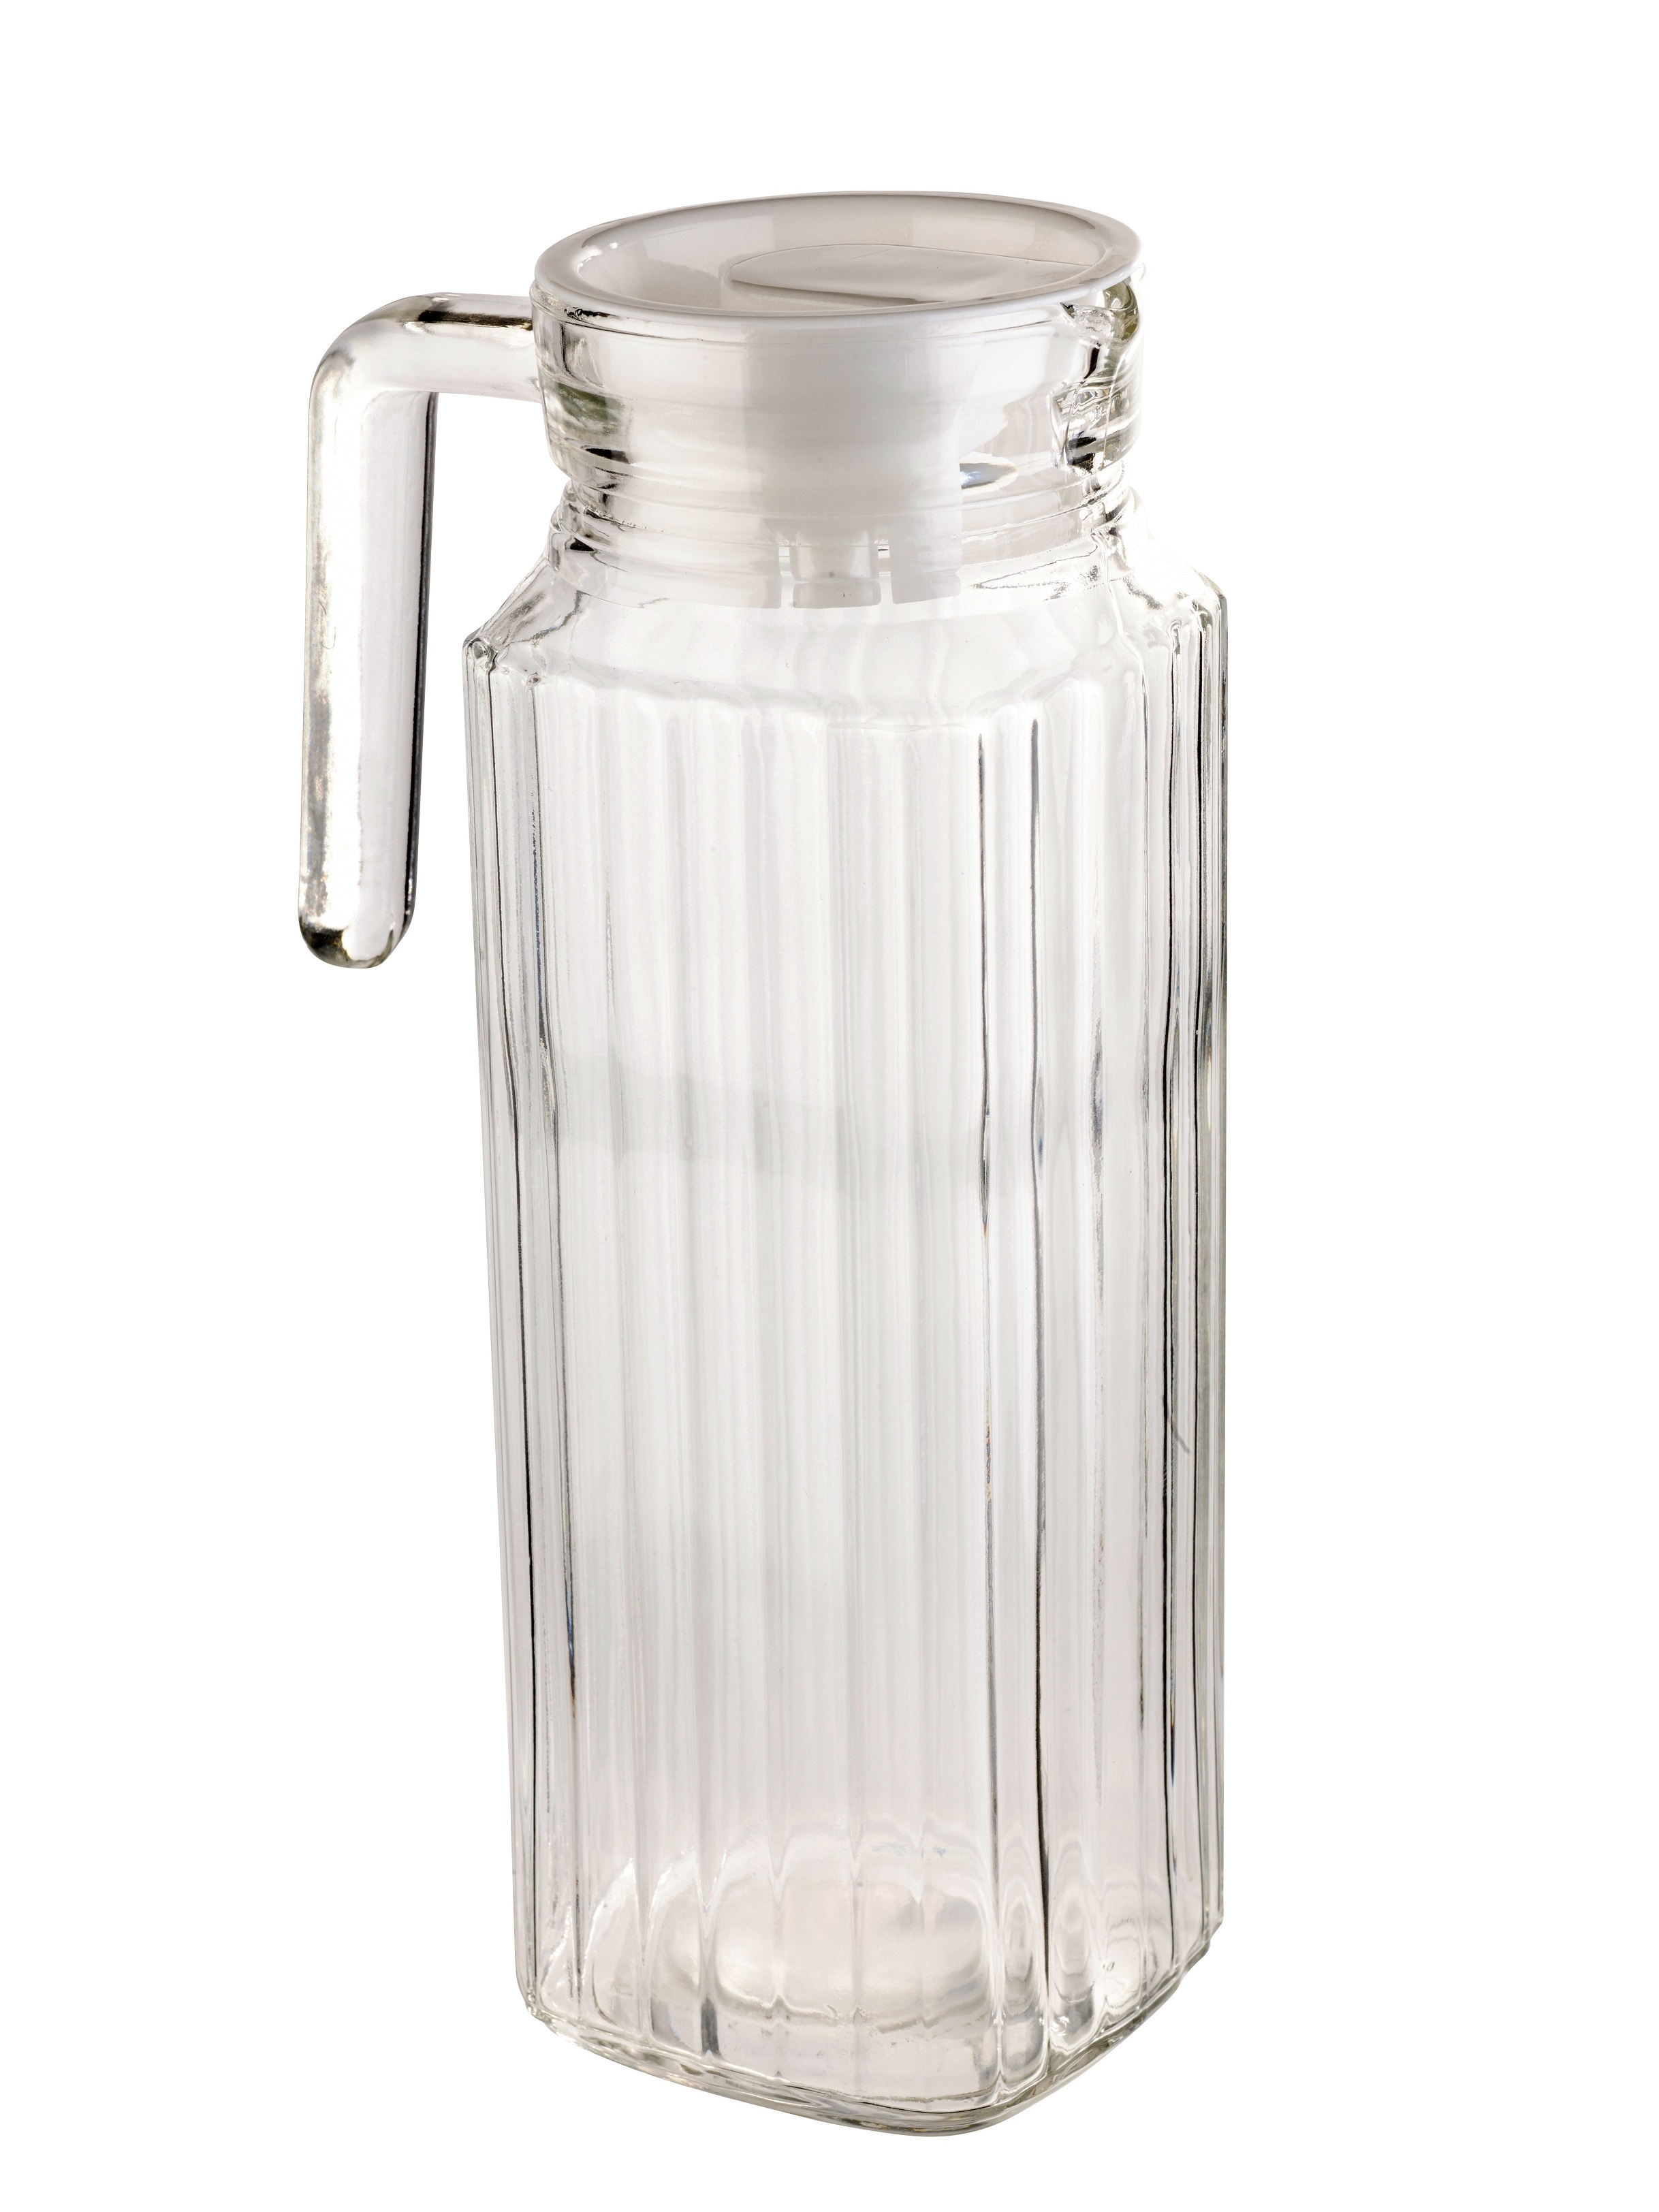 1 Litre Square Glass Jug With Lid Pitcher Juice Water